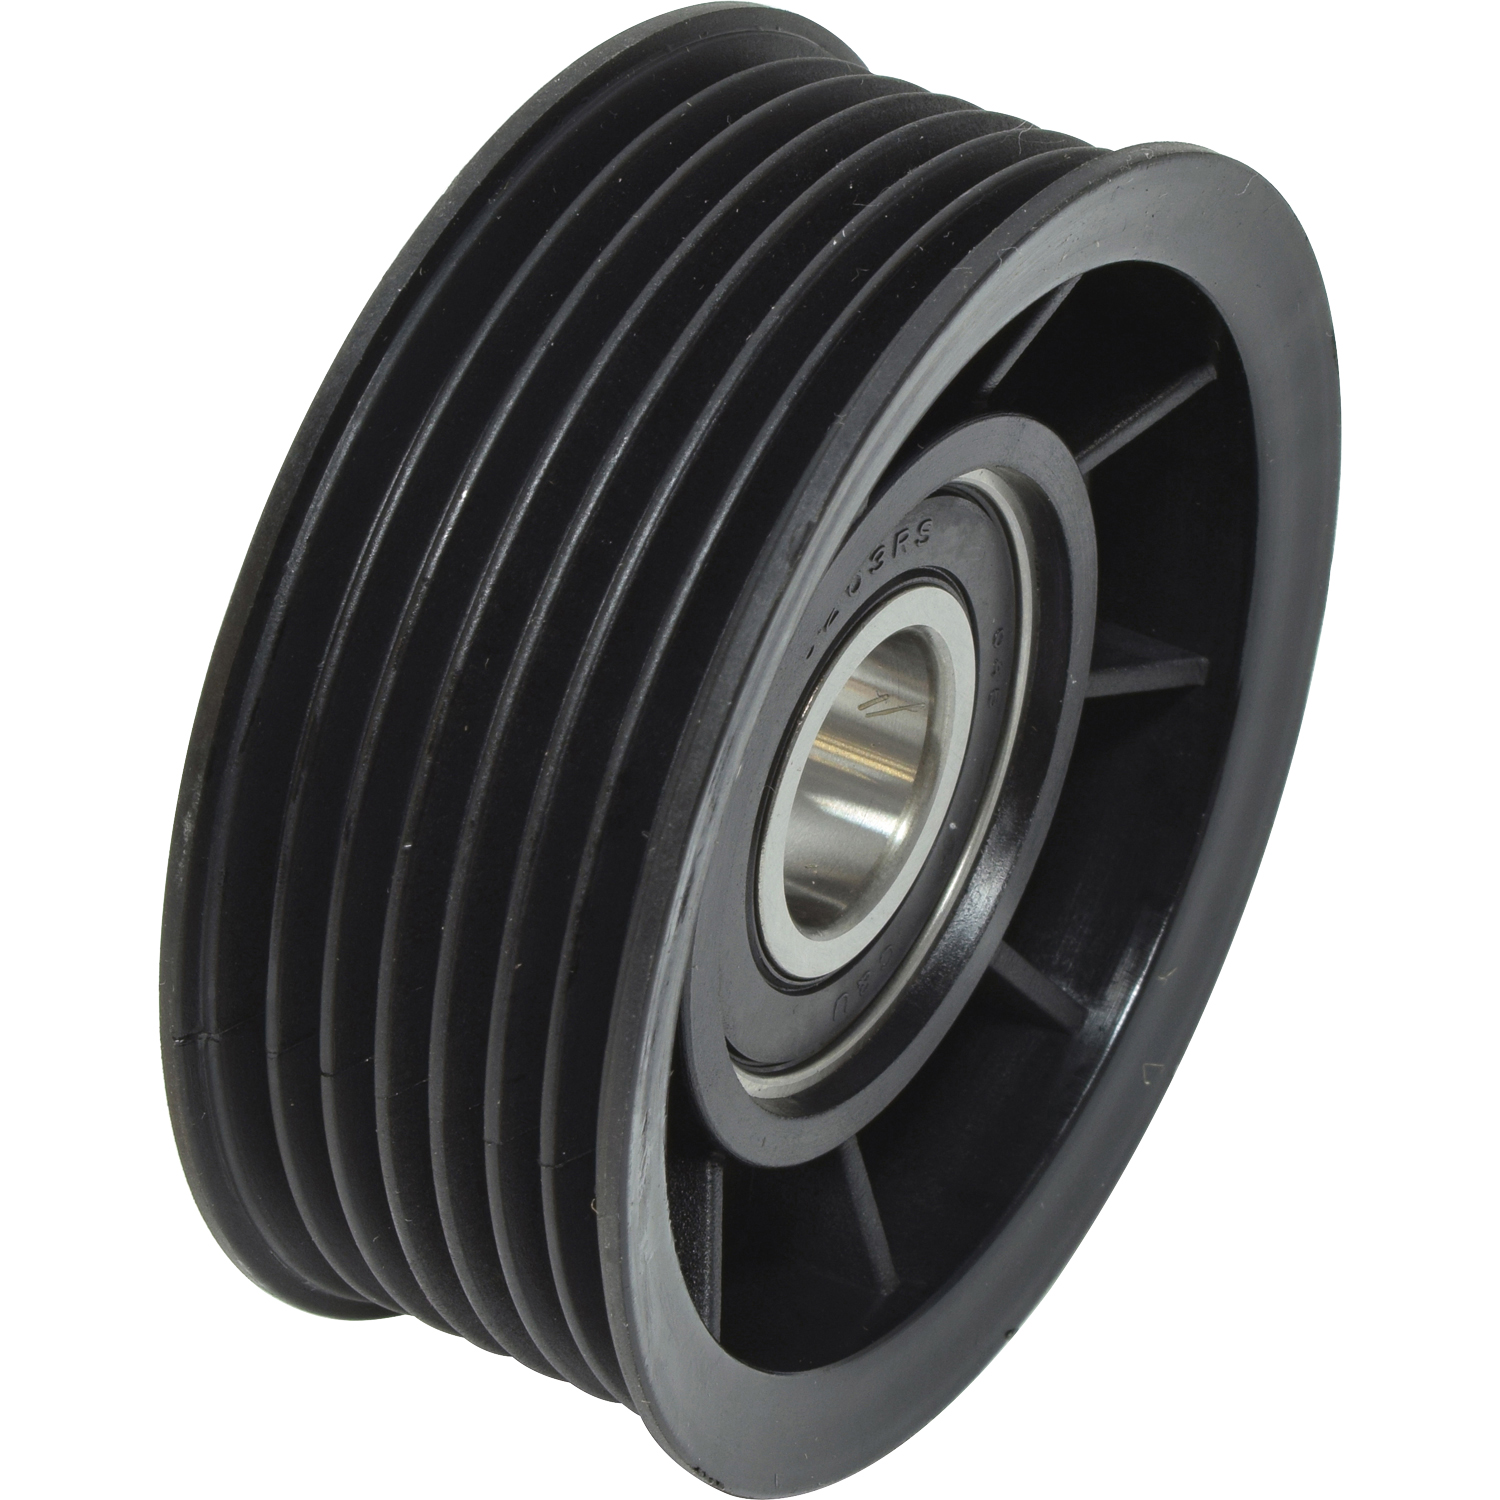 Serpentine Belt Tensioner Pulley 76MM 7GR FLANGE